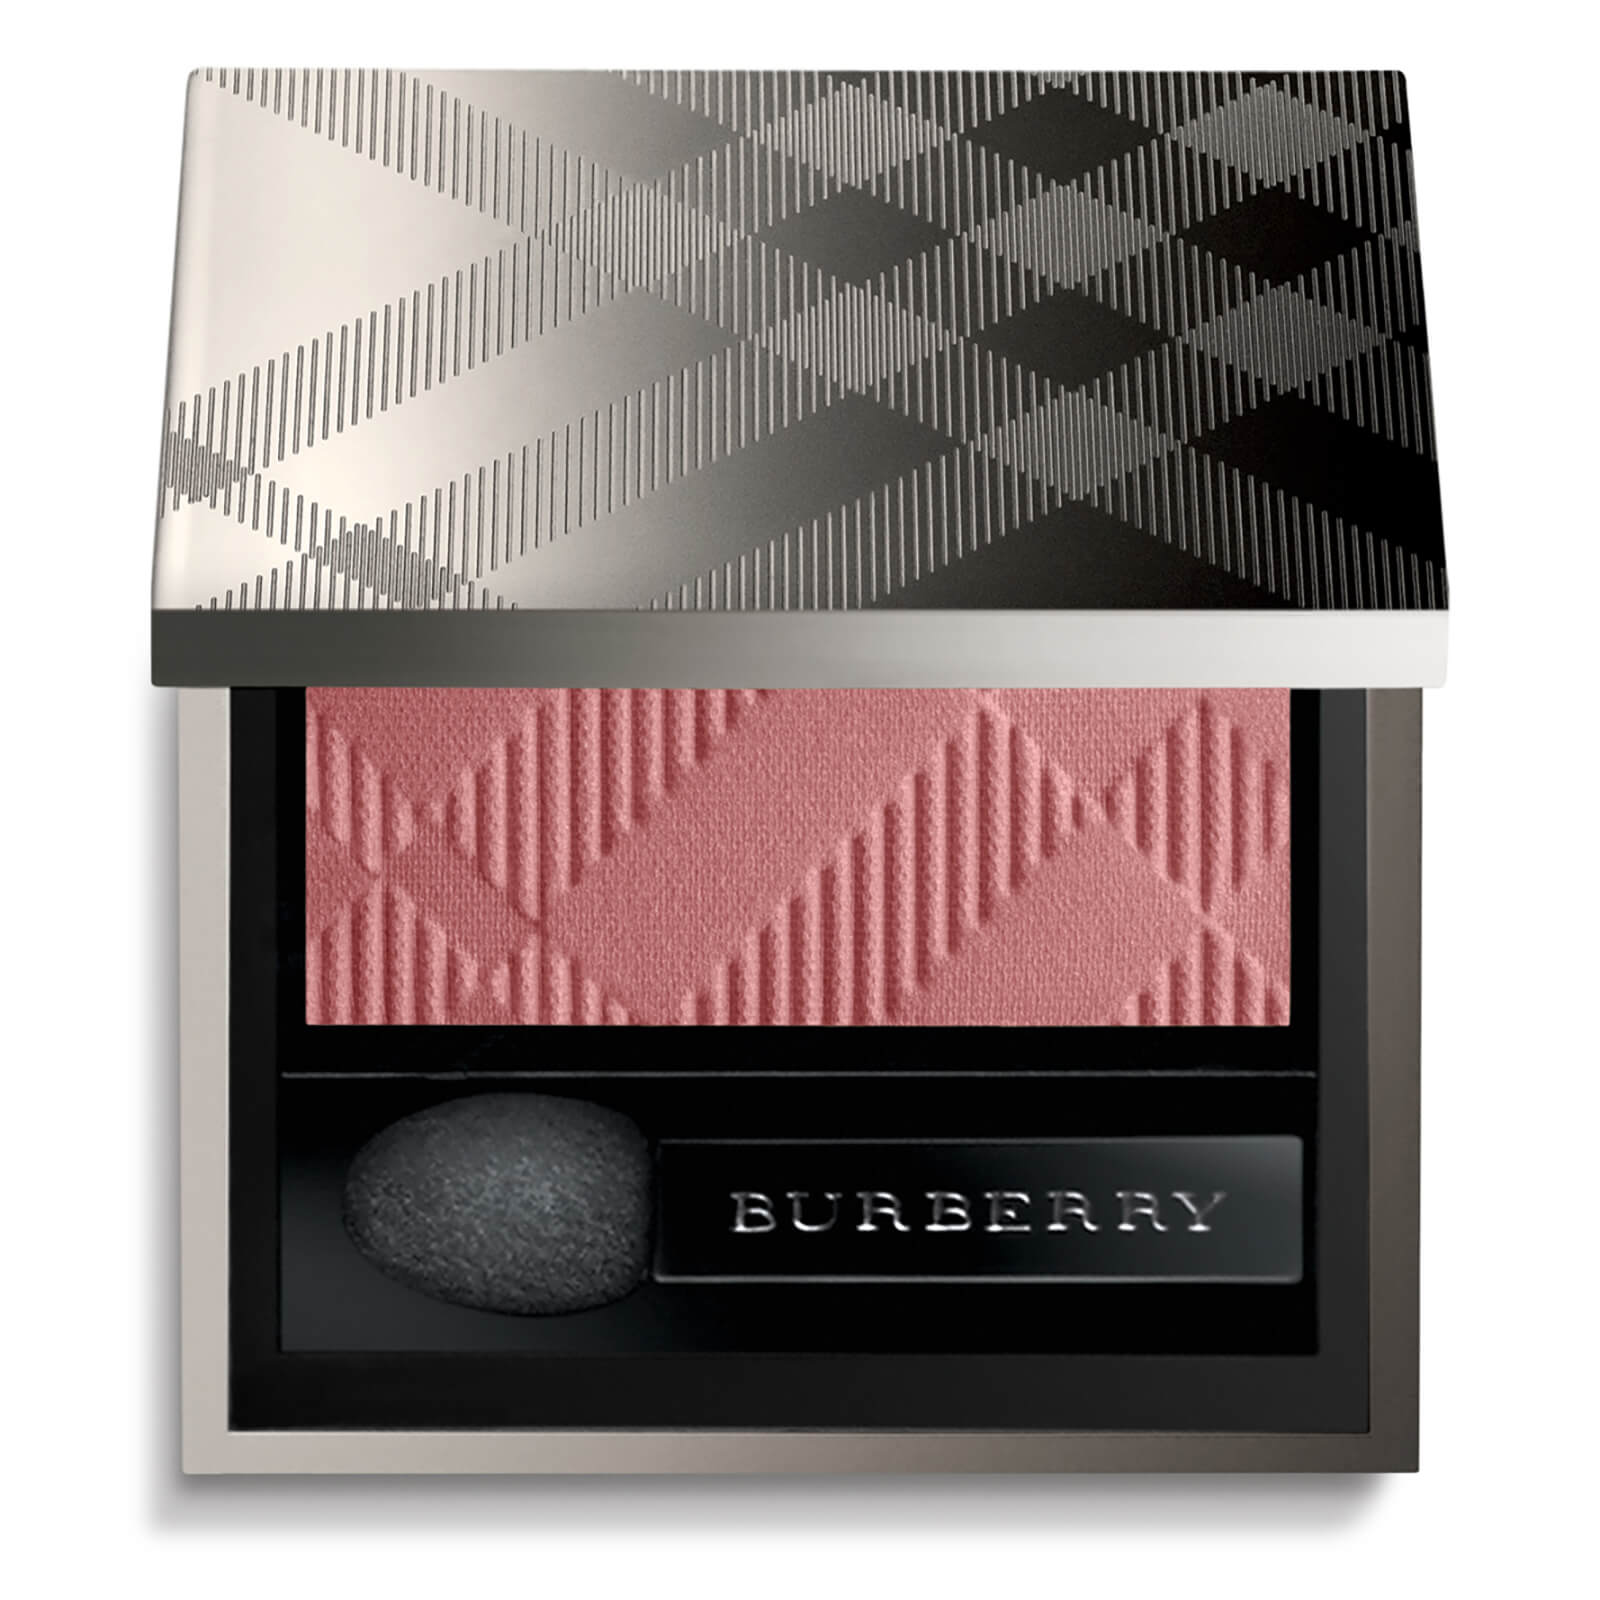 6a2709318a88 Burberry Eye Colour Wet and Dry Silk Shadow 2.7g (Various Shades ...